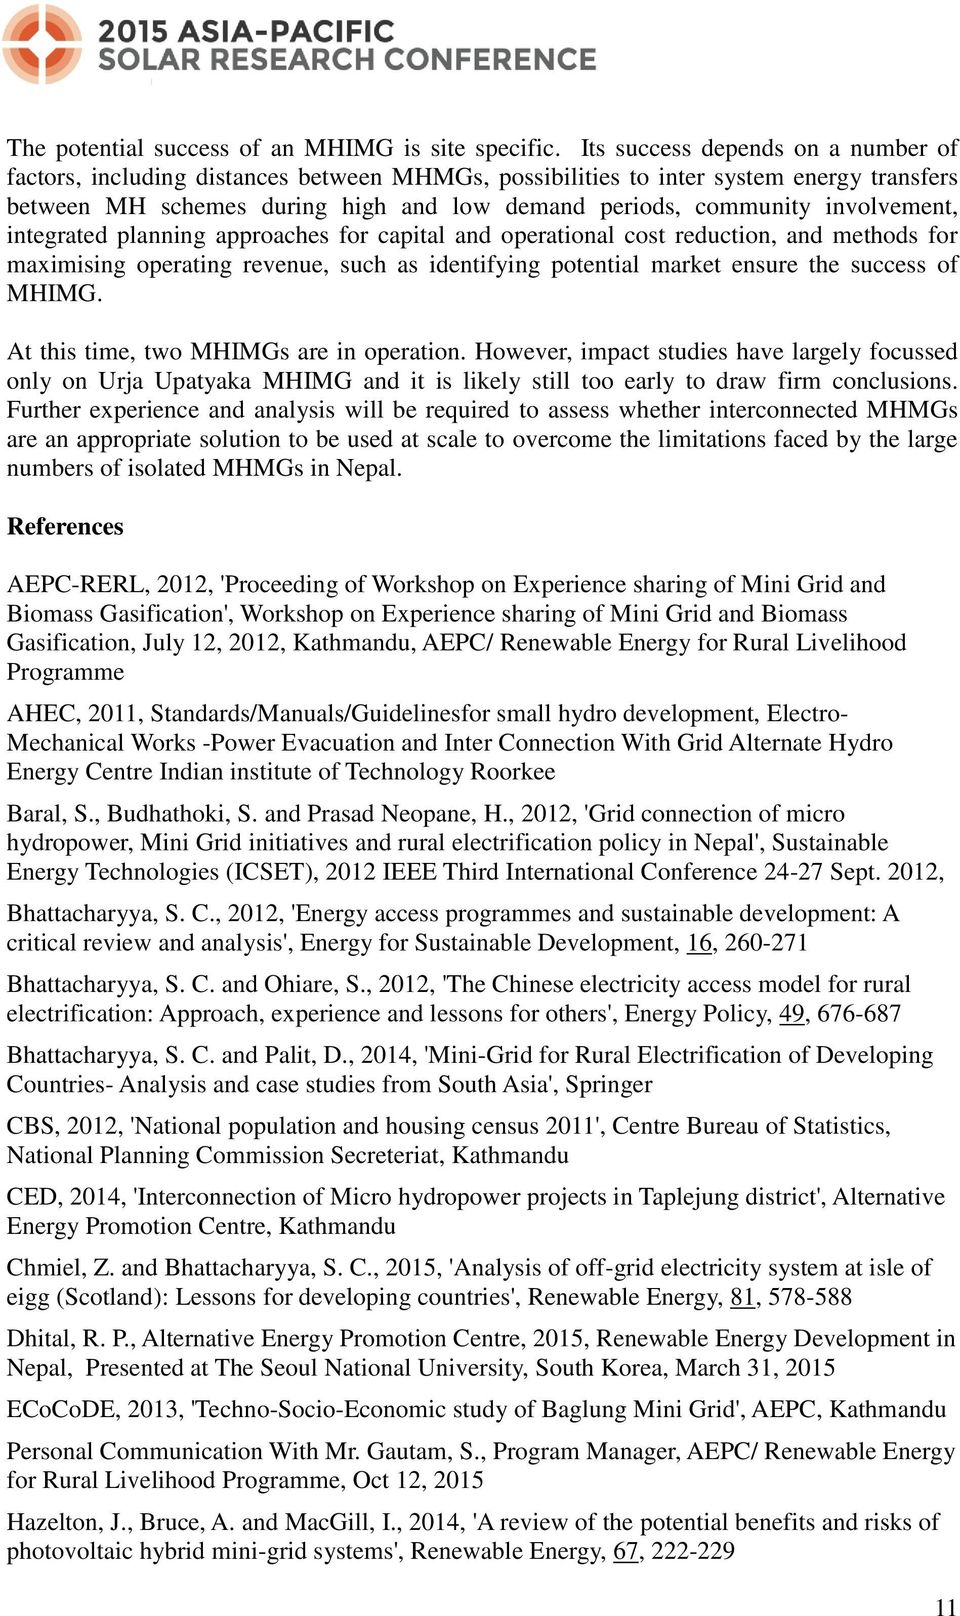 Micro Hydro Interconnected Mini Grids in Nepal: Potential